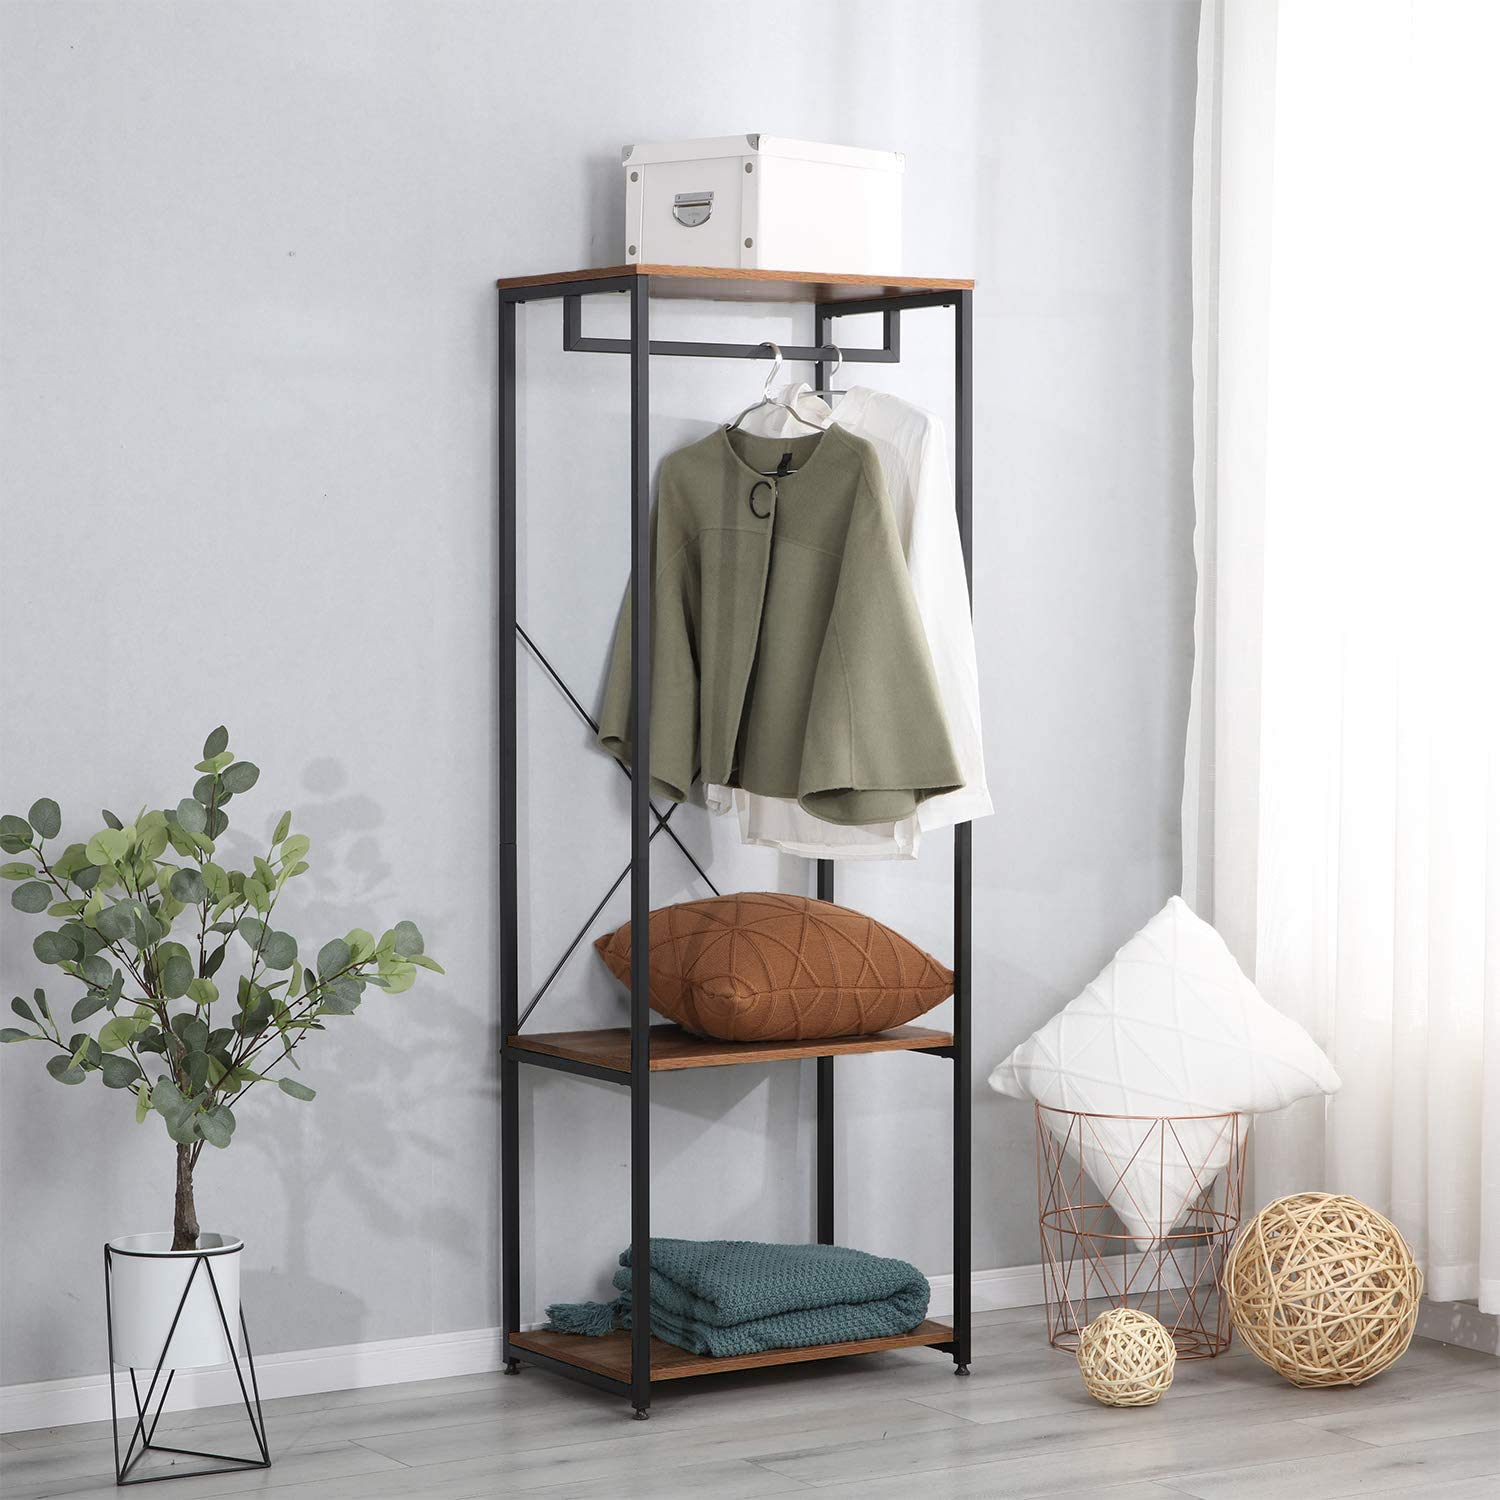 COMHOMA Coat Rack, Hall Tree Entryway Shoe Bench, Storage Shelf Organizer, Accent Furniture with Metal Frame